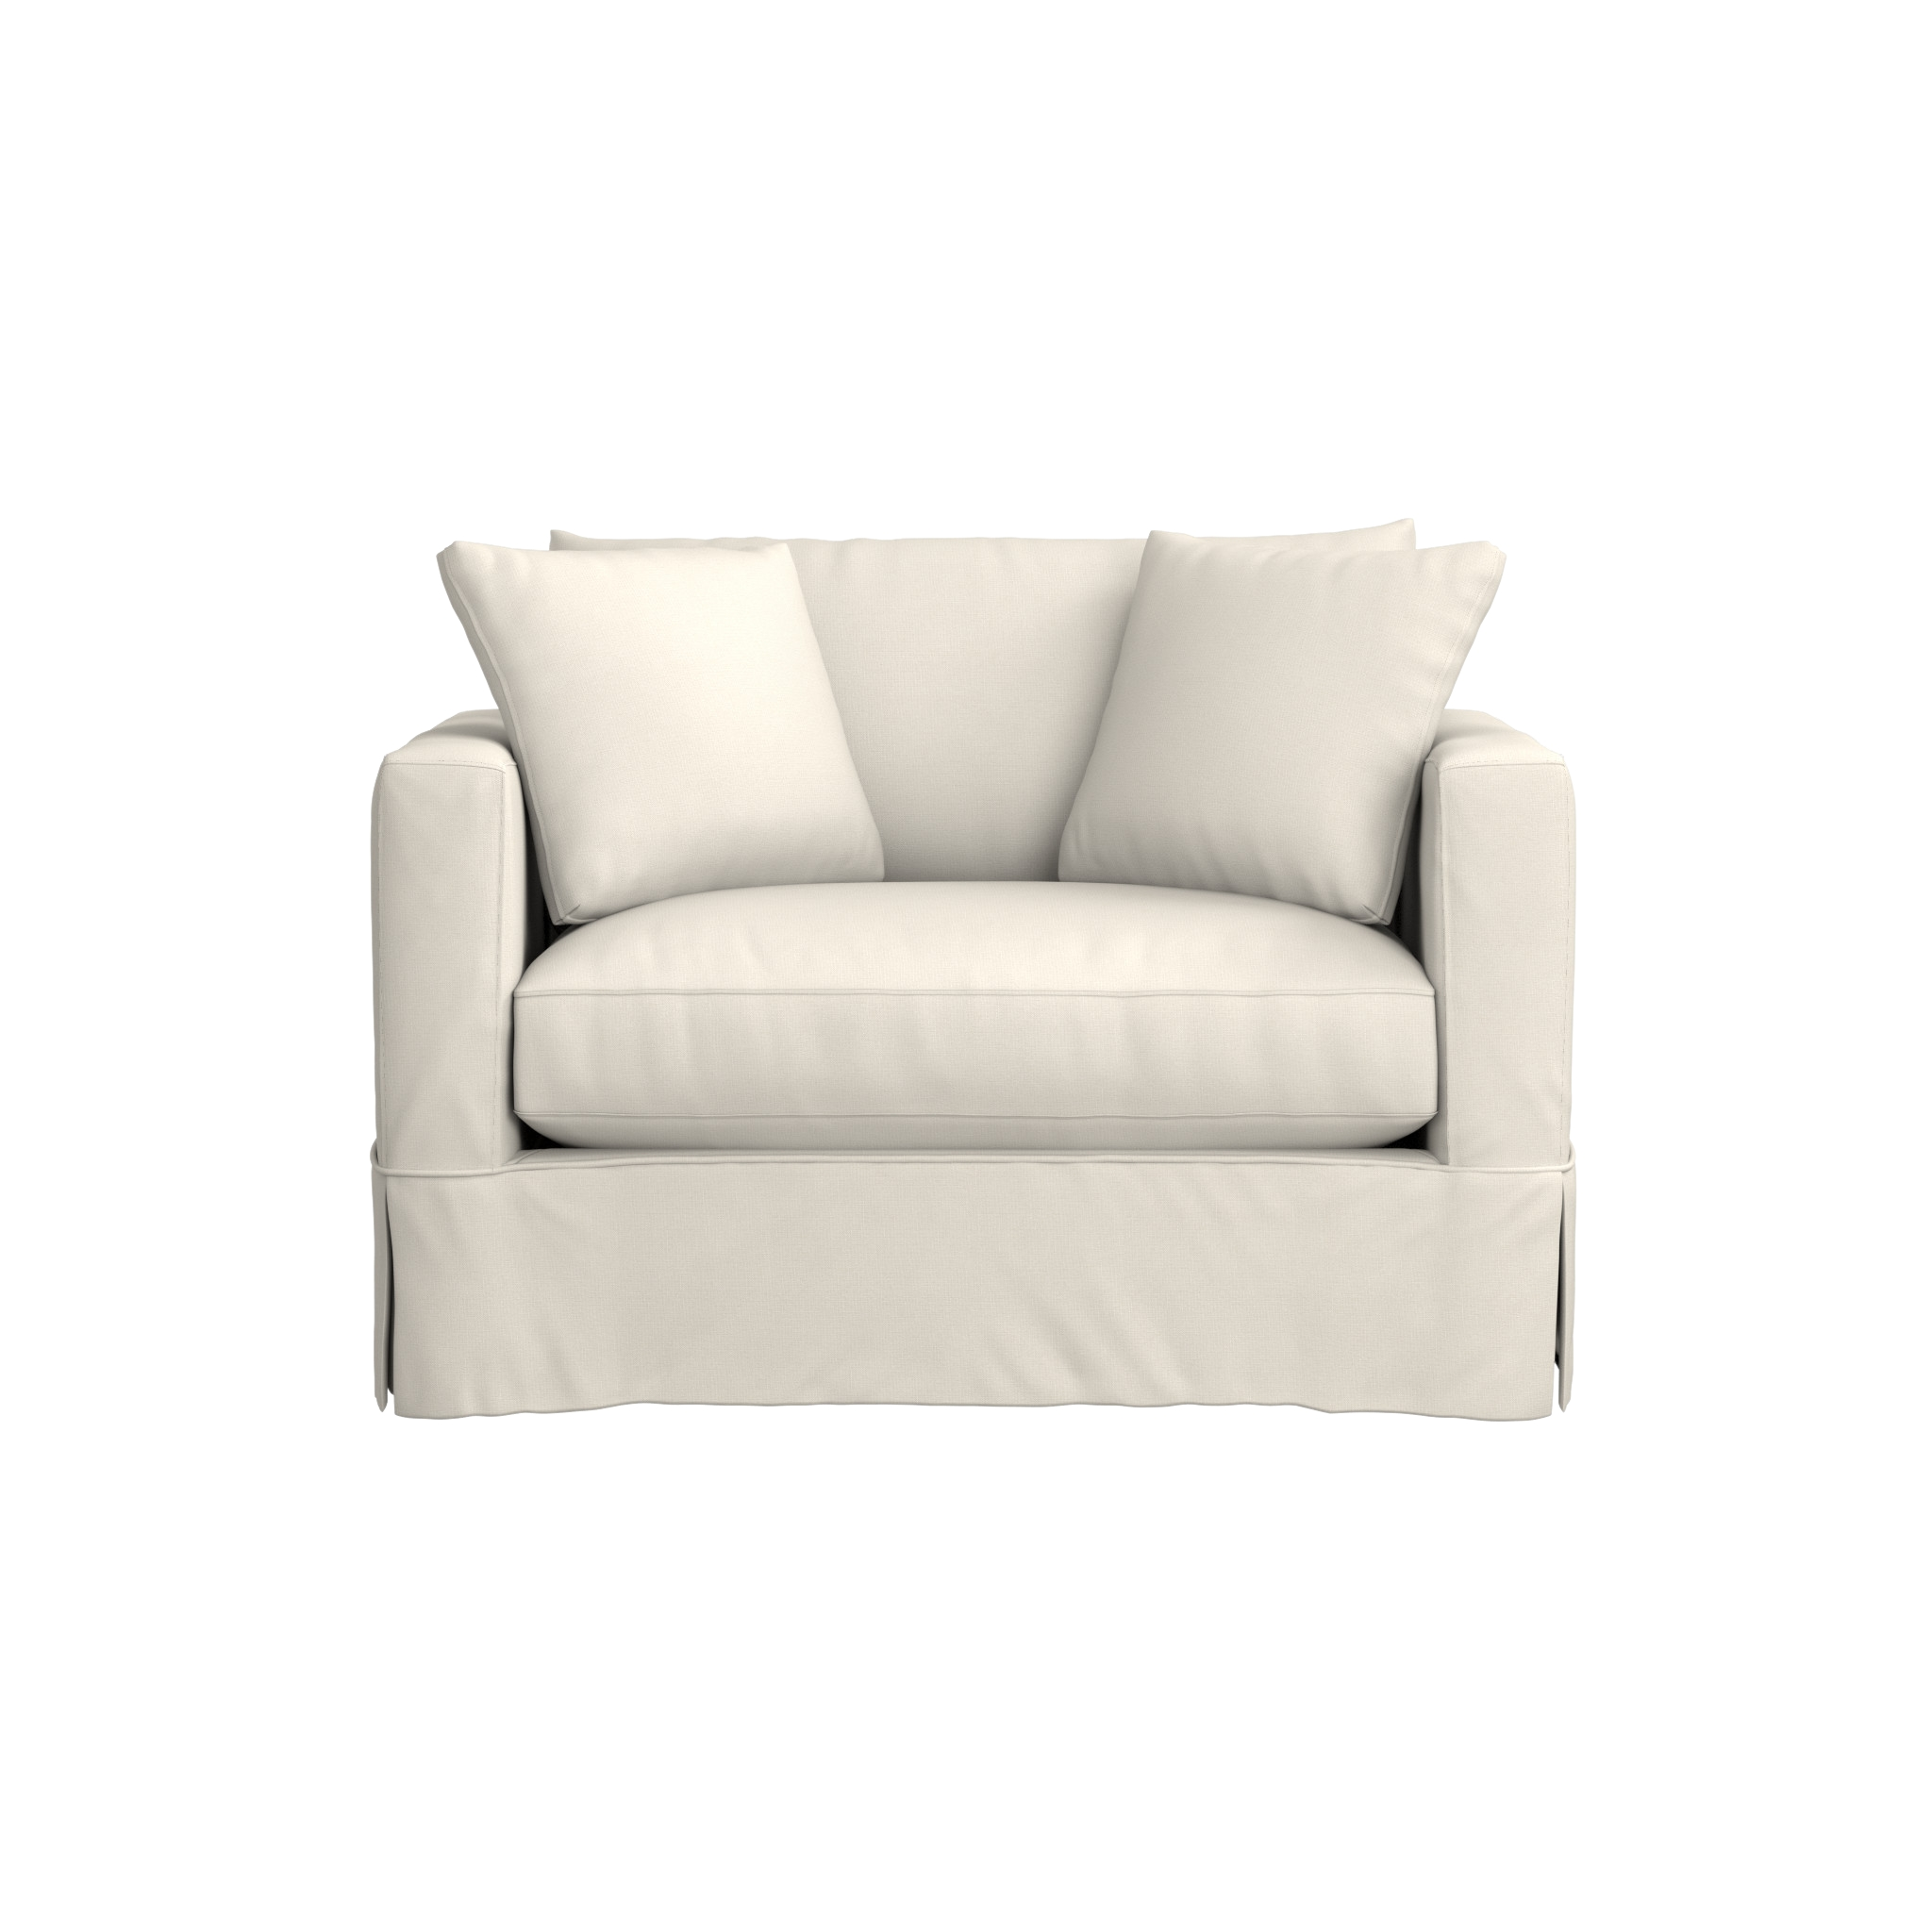 Sofas Center : Twin Sofa Sleeper Chairstwin Chairs Salechair Size Pertaining To Twin Sofa Chairs (Image 14 of 20)